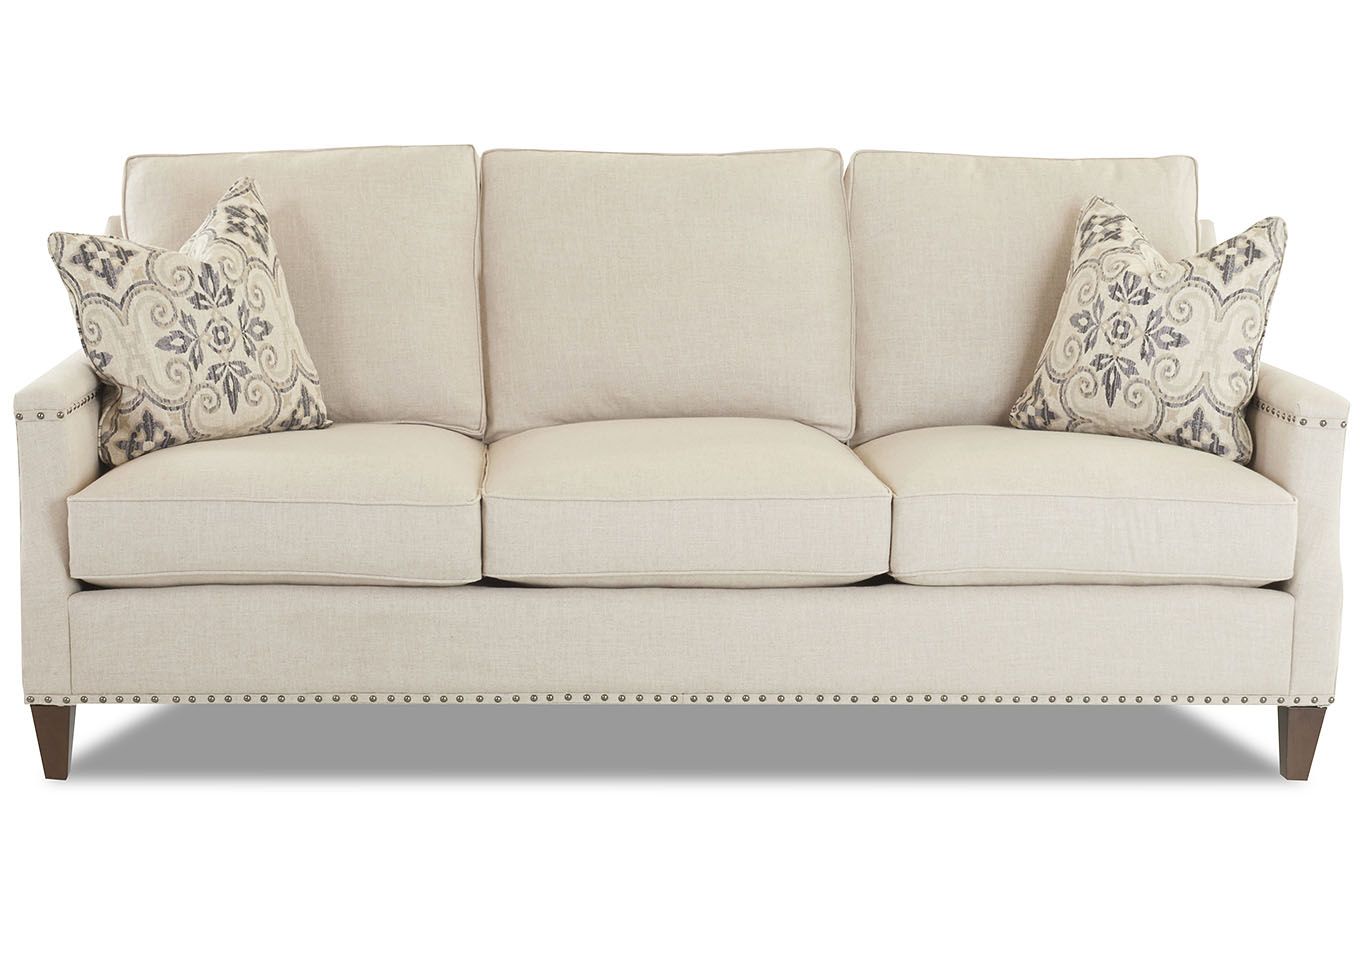 Write A Review - Bond Natural Stationary Fabric Sofa - Best Buy Furniture And Mattress